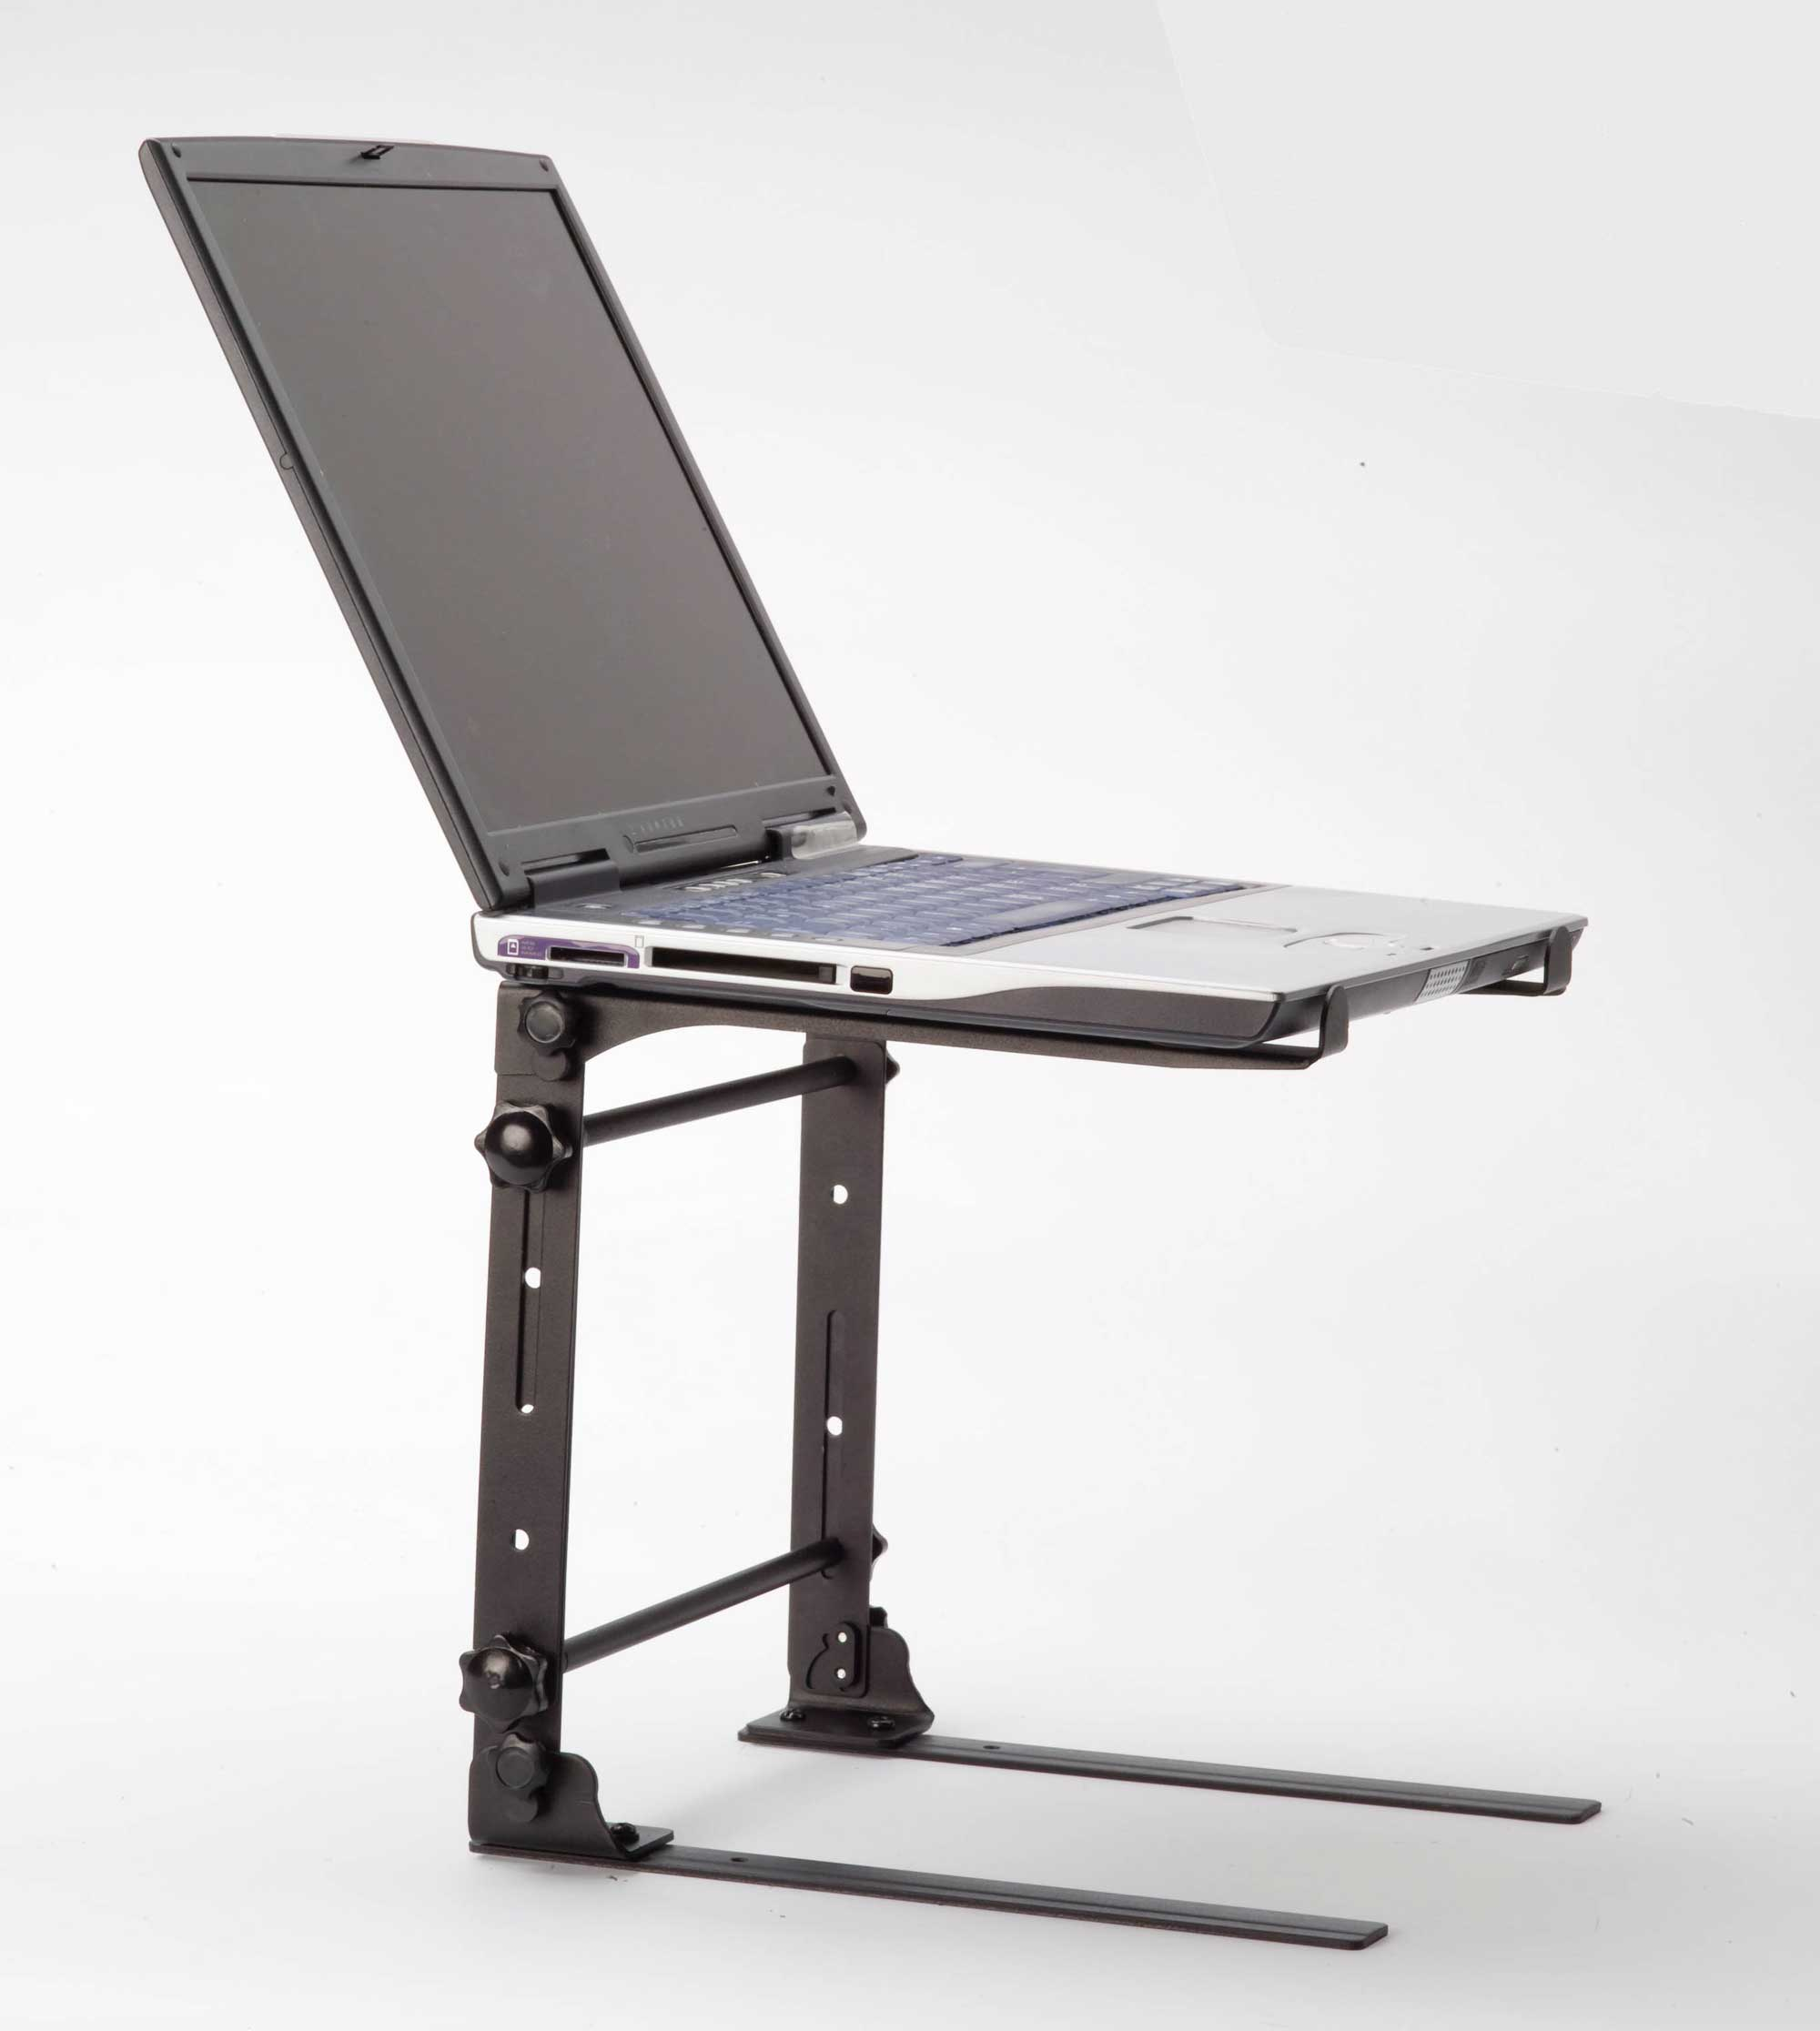 Magma Flexible Laptop Stand Unit